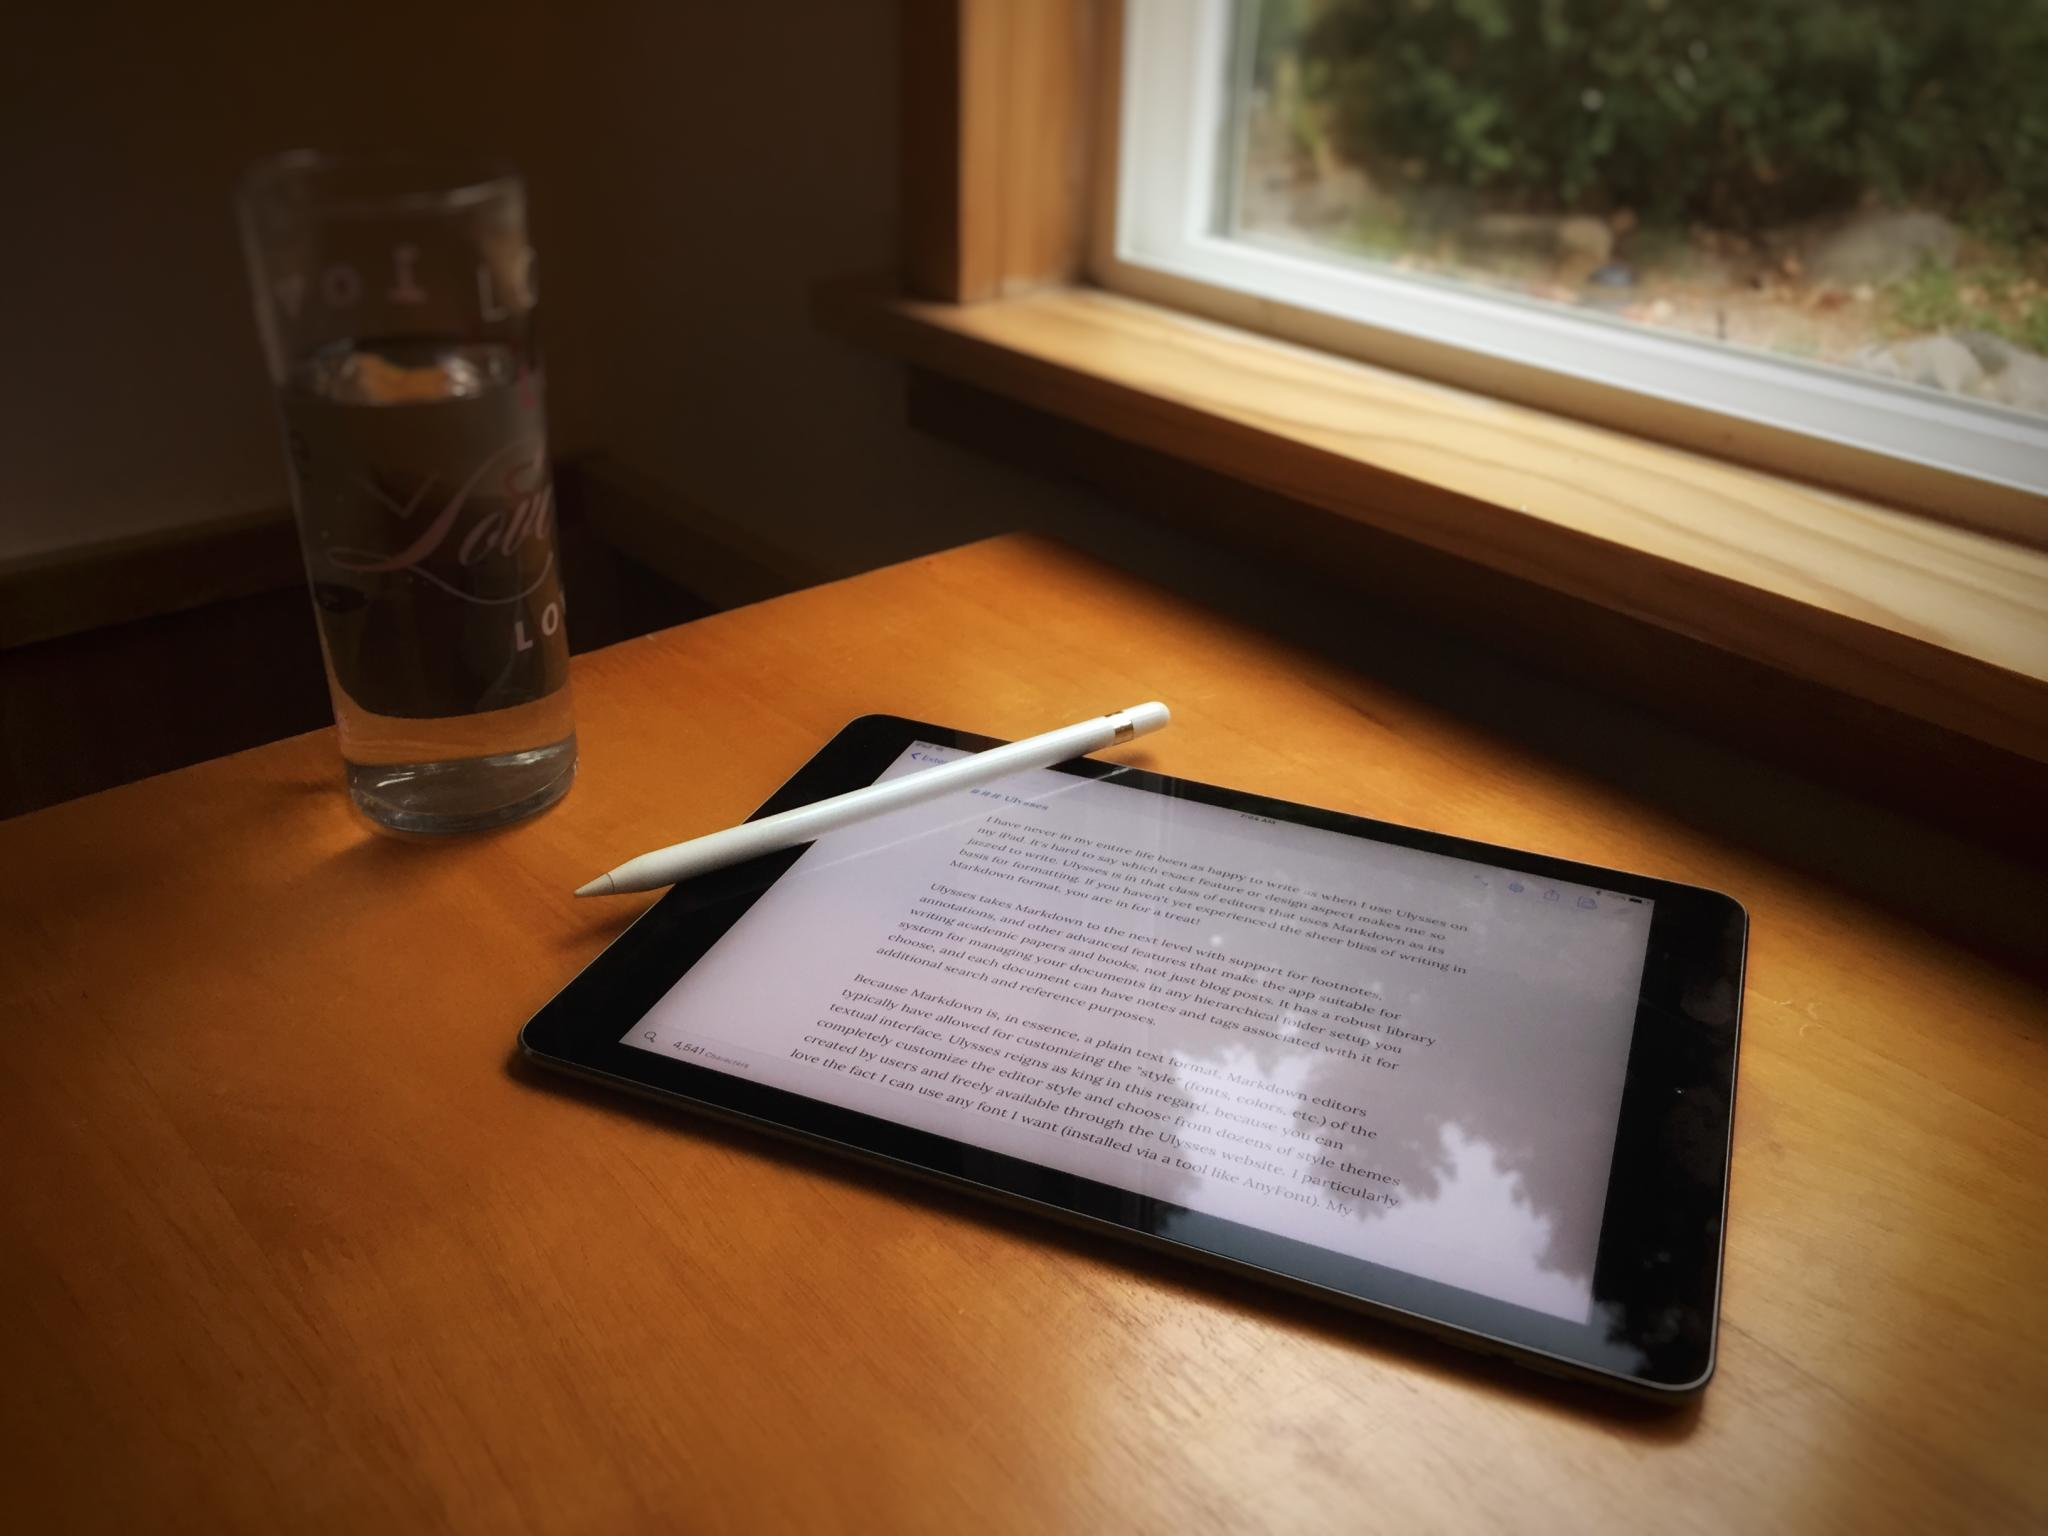 jared white writer musician designer my top 3 favorite writing productivity apps for ipad